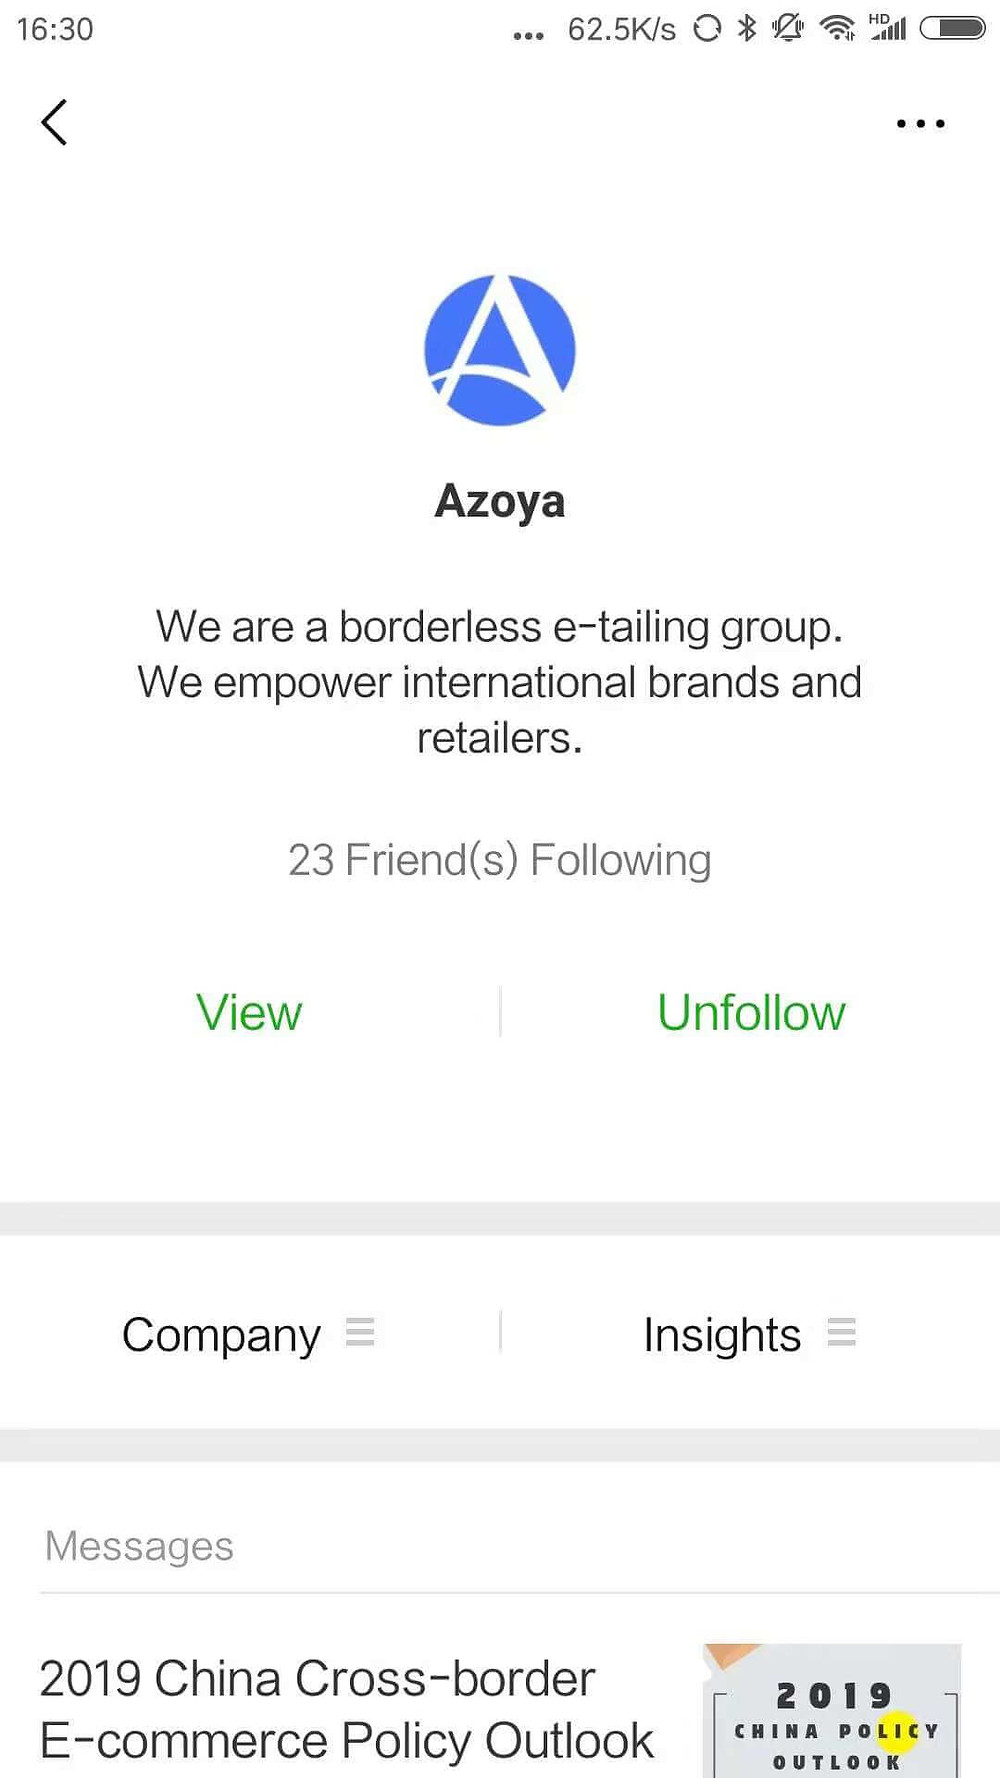 Azoya's WeChat official accout